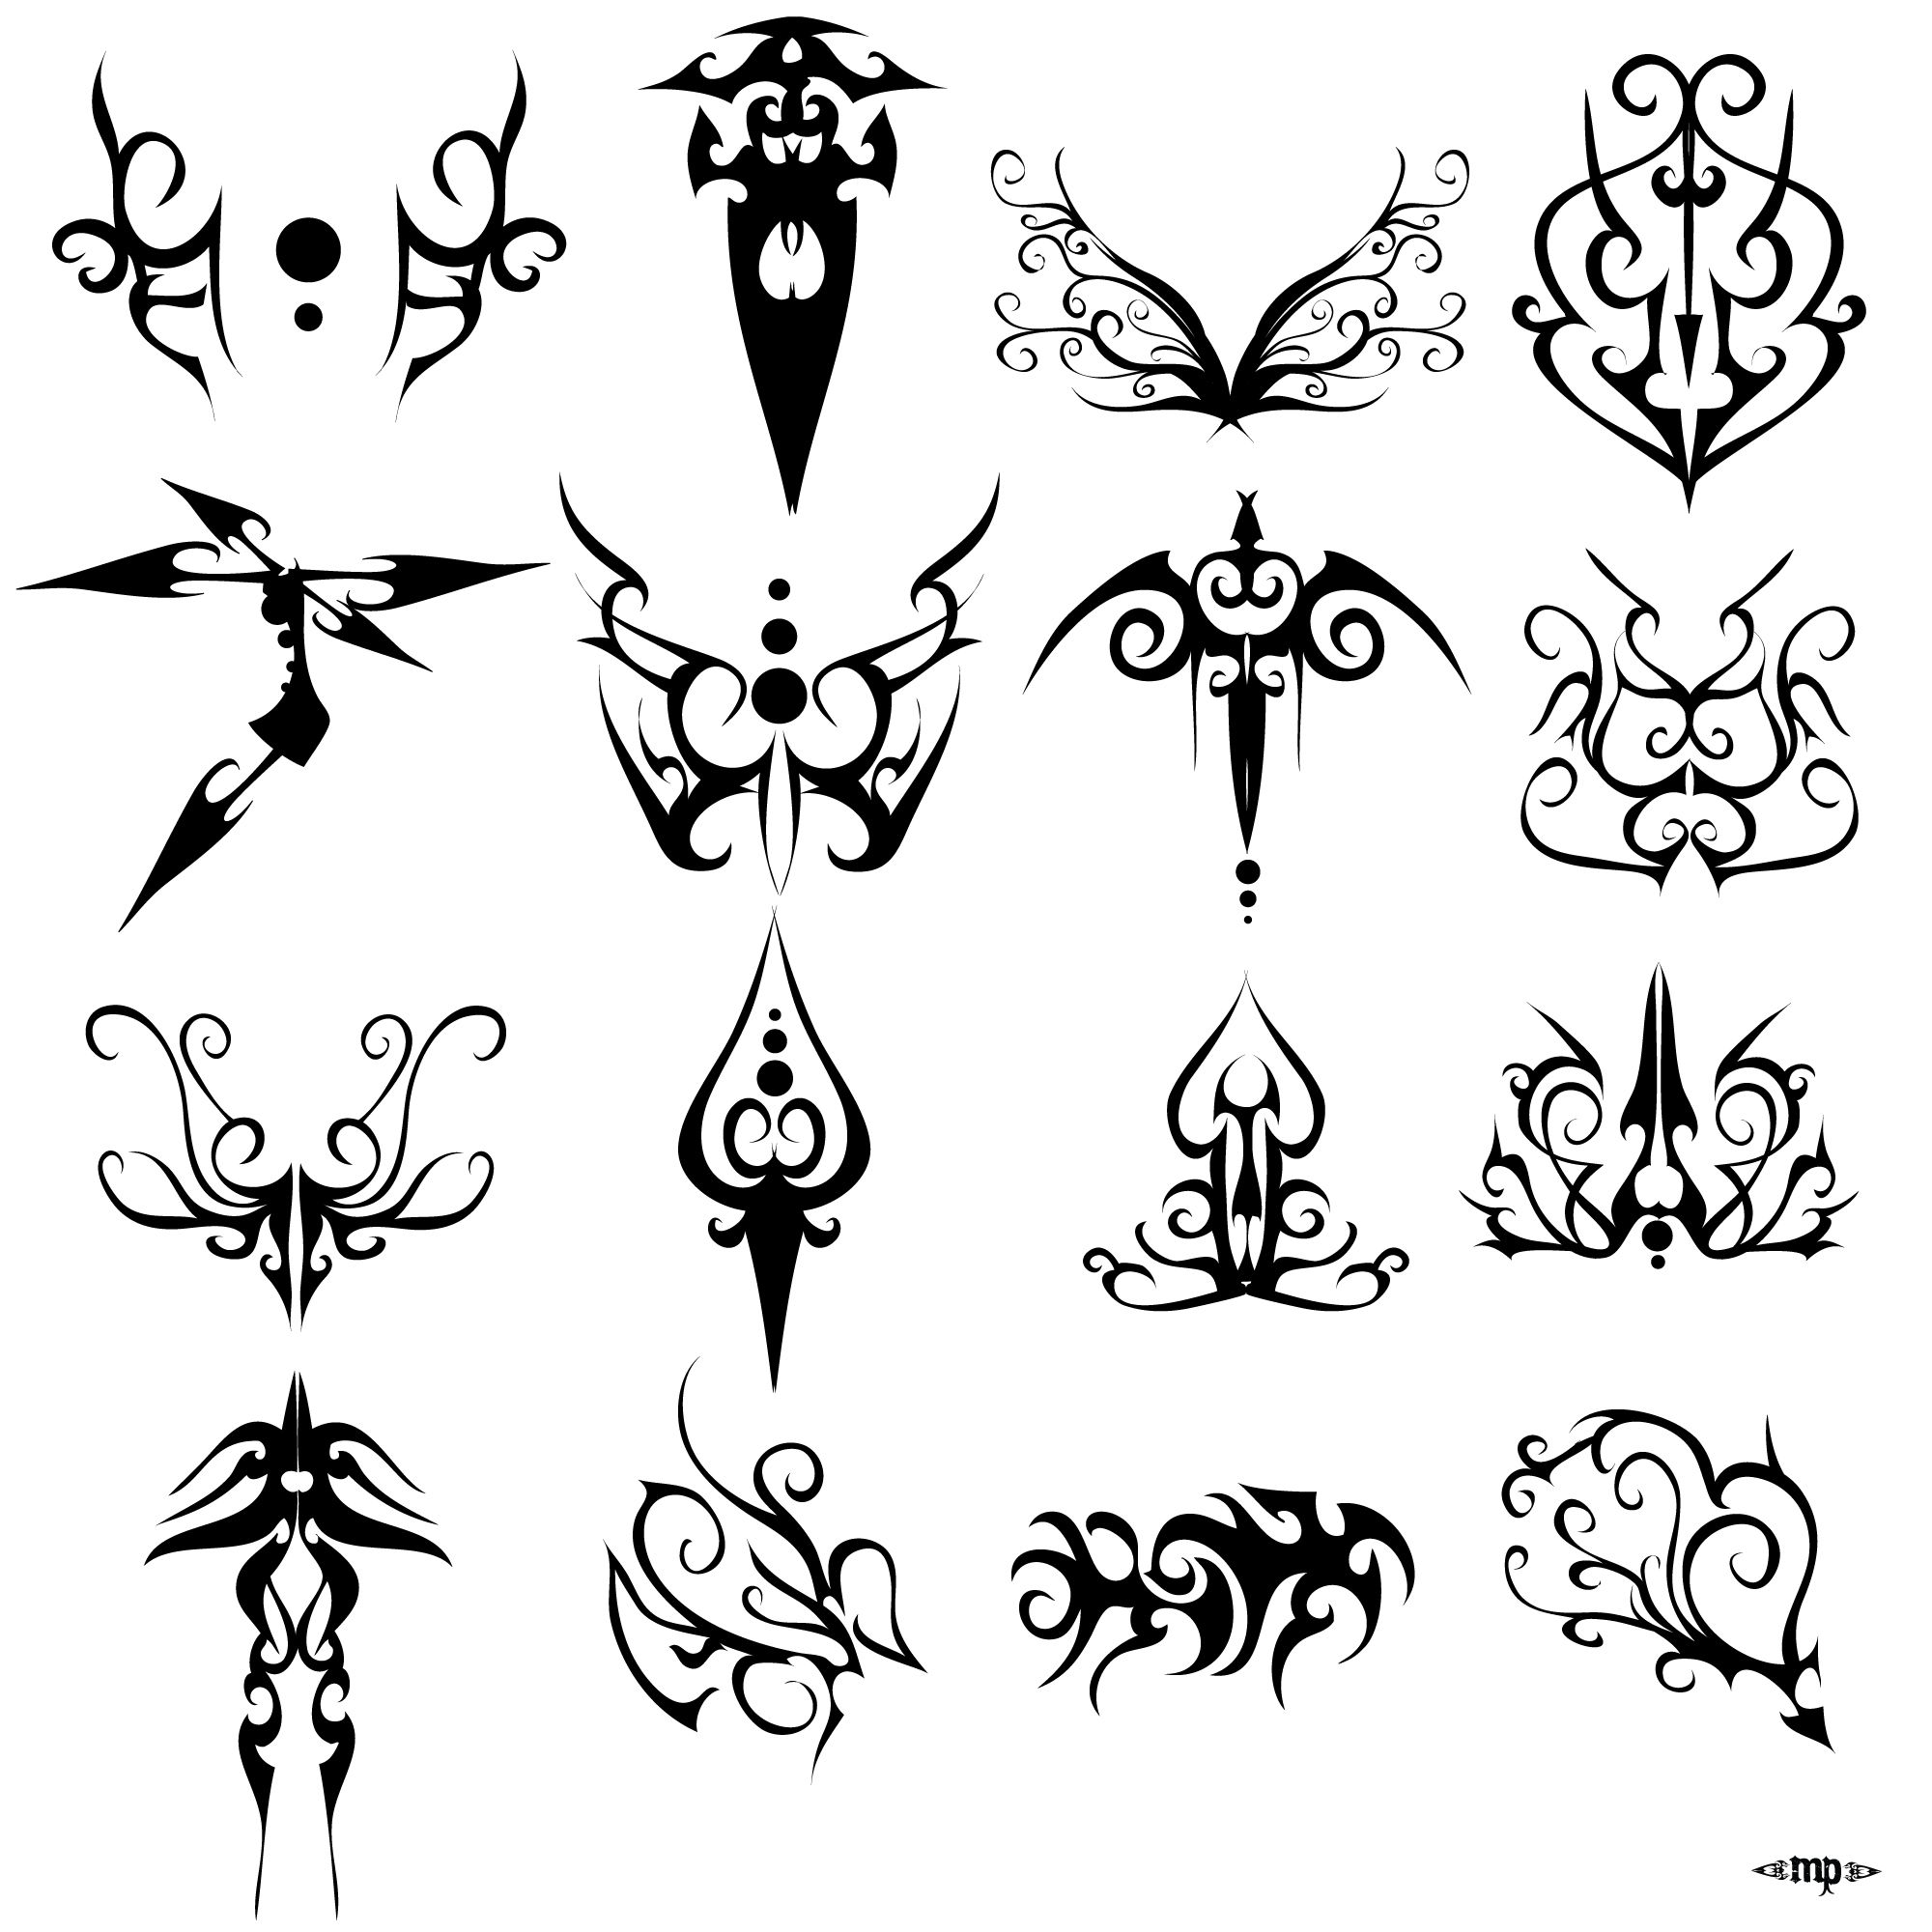 Tattoo design picture - Explore Designs To Draw Simple Tattoo Designs And More